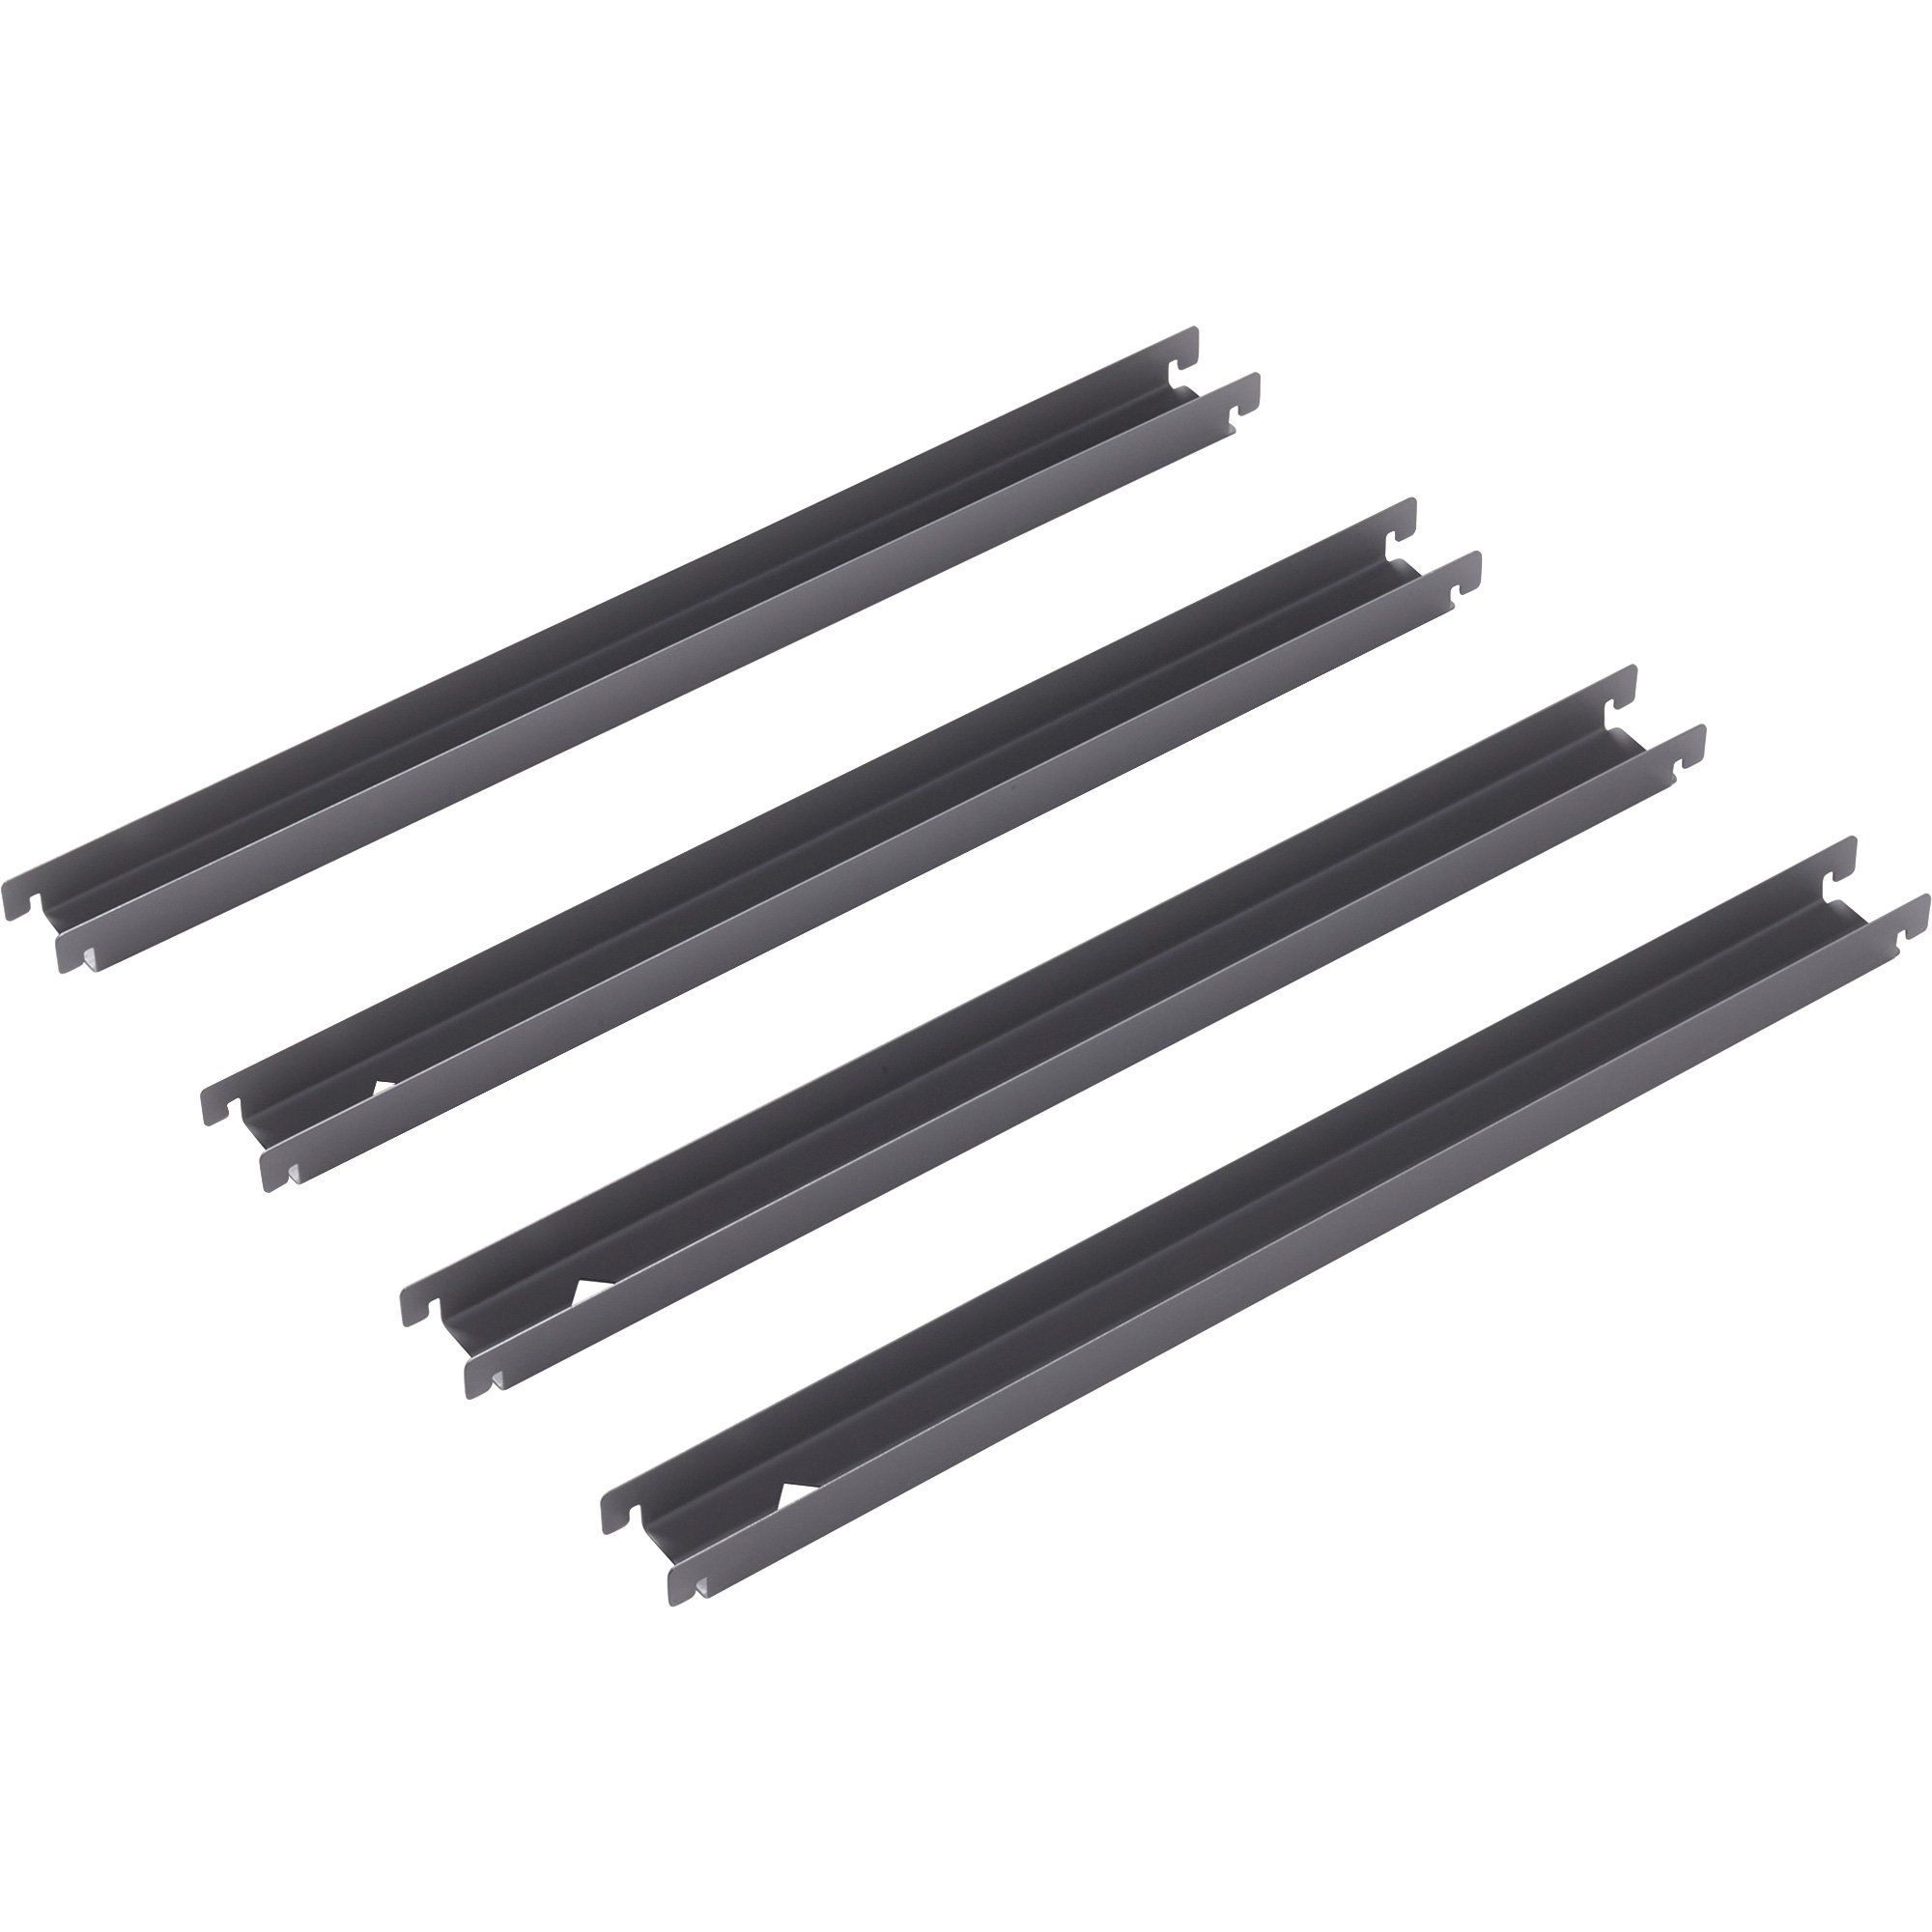 Lorell LLR60565 Front-to-Back Rail Kit by Lorell